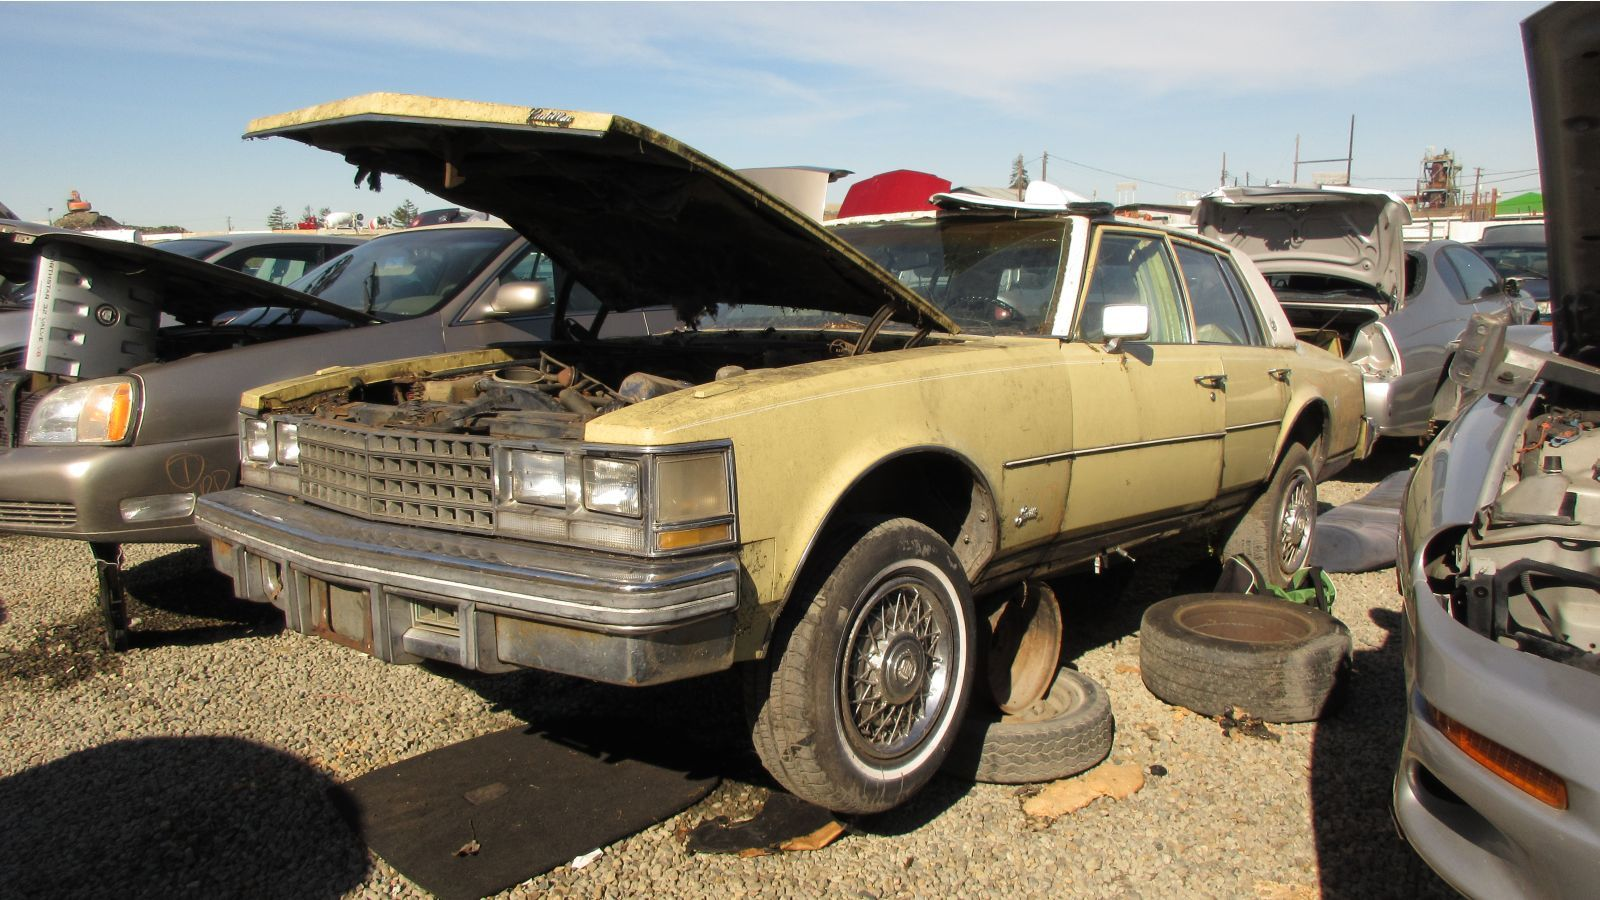 1976 Cadillac Seville, based on a Chevy Nova, is now a ...